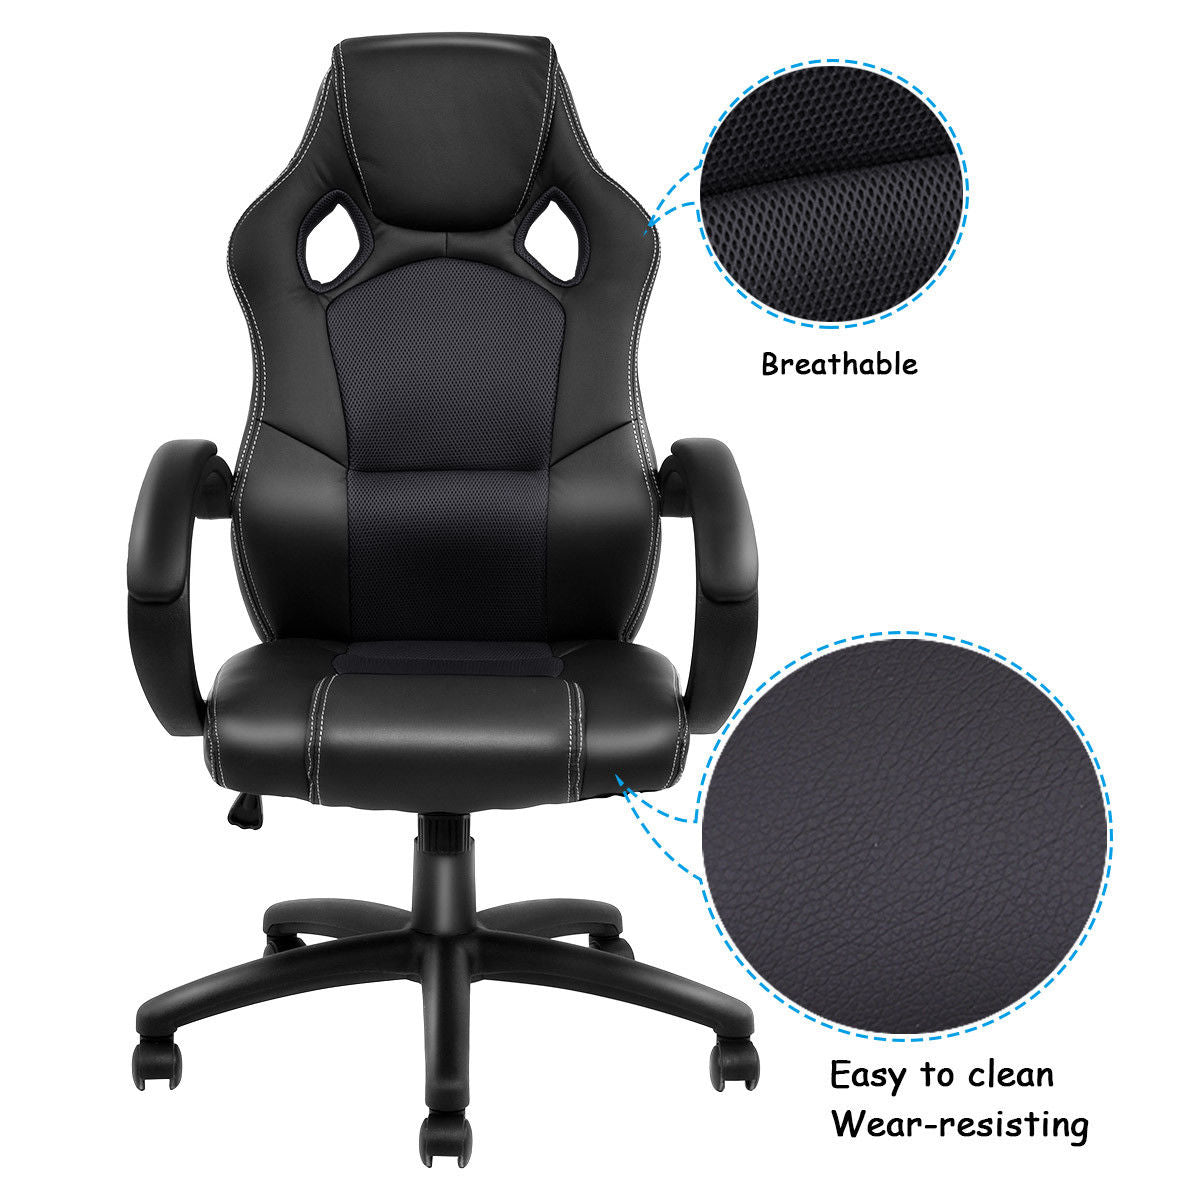 cbdf gaming back cheap merax good gami on office high or furniture chairs chair